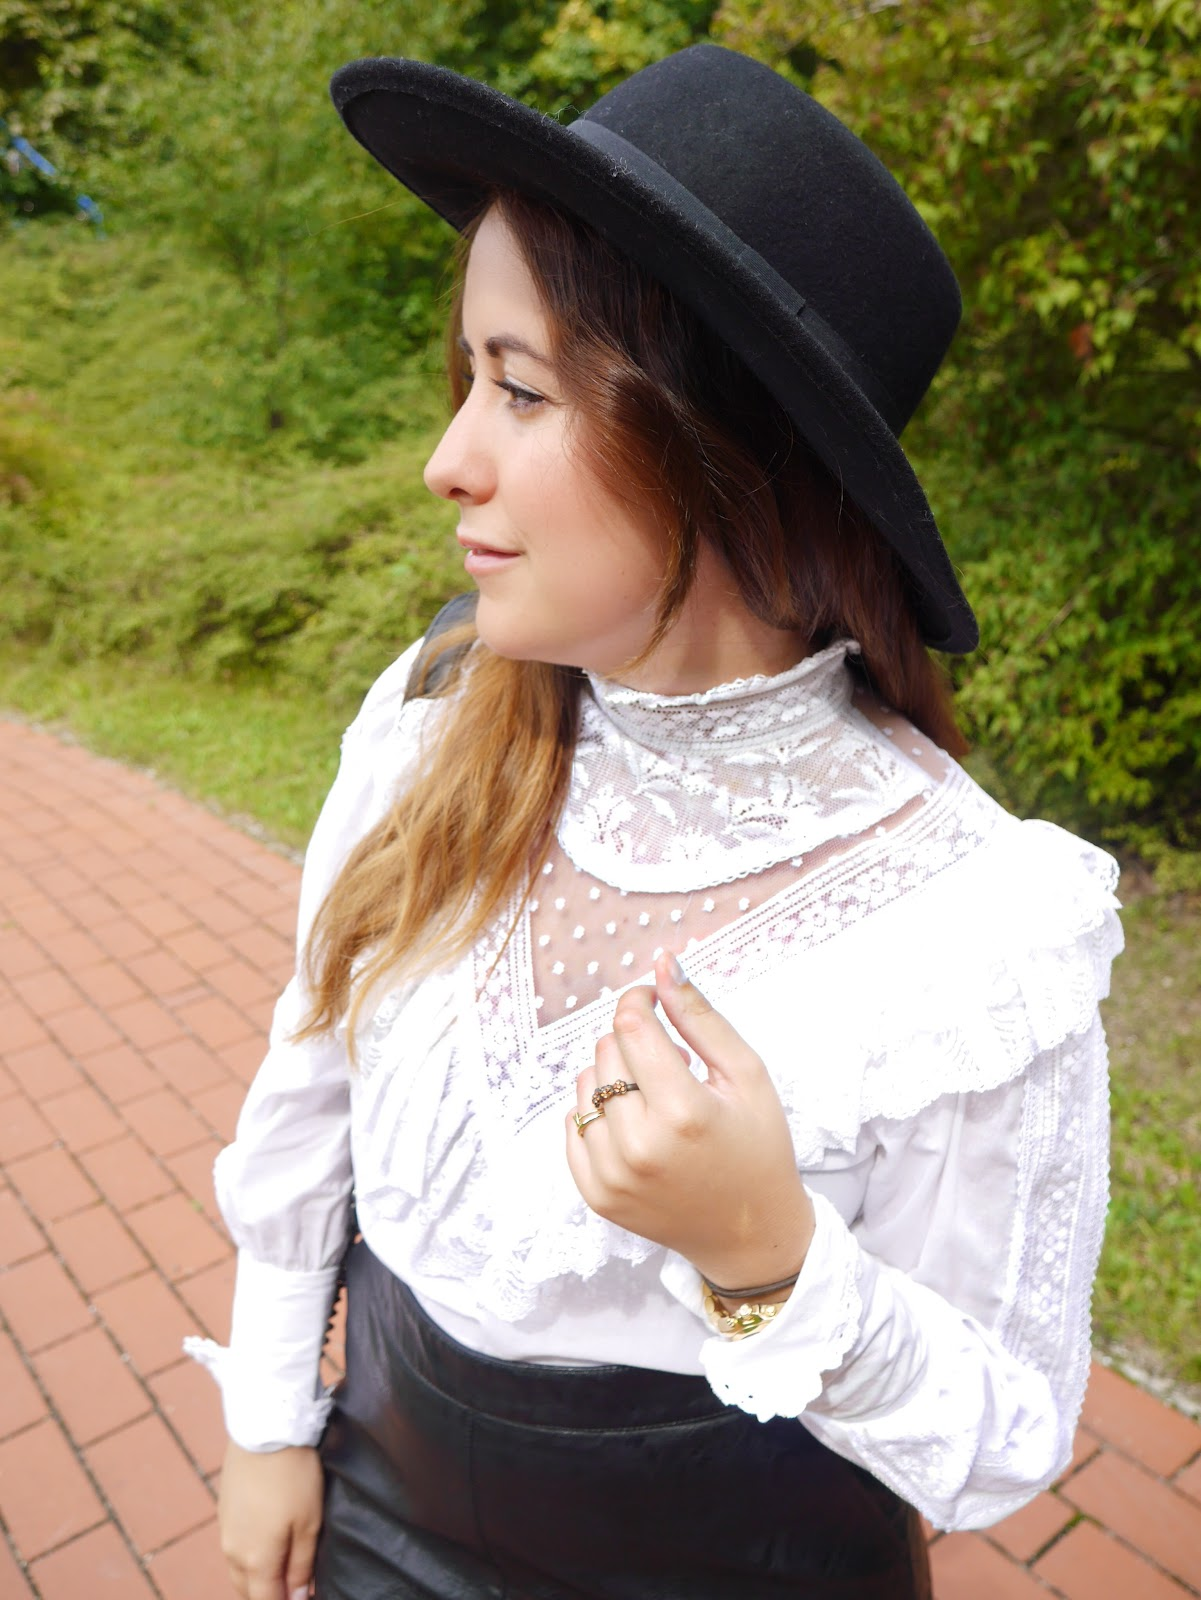 Street Style, egoblogger, fashion blogger, vintage shirt, lace shirt, Zara leather skirt, falda Zara cuero